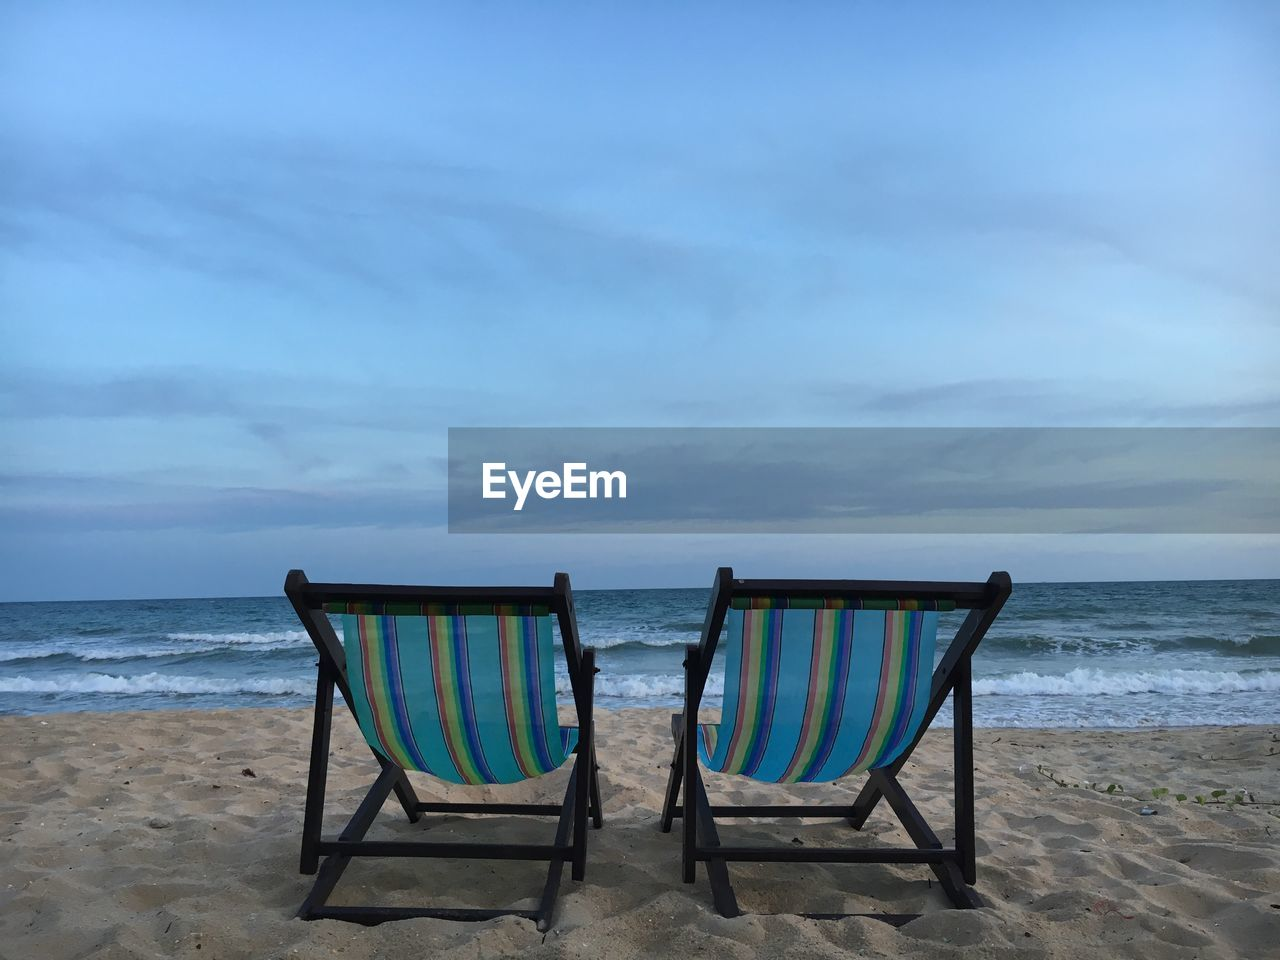 beach, sea, water, land, cloud - sky, sky, horizon, horizon over water, scenics - nature, beauty in nature, sand, tranquility, chair, seat, tranquil scene, nature, absence, idyllic, day, outdoors, no people, outdoor chair